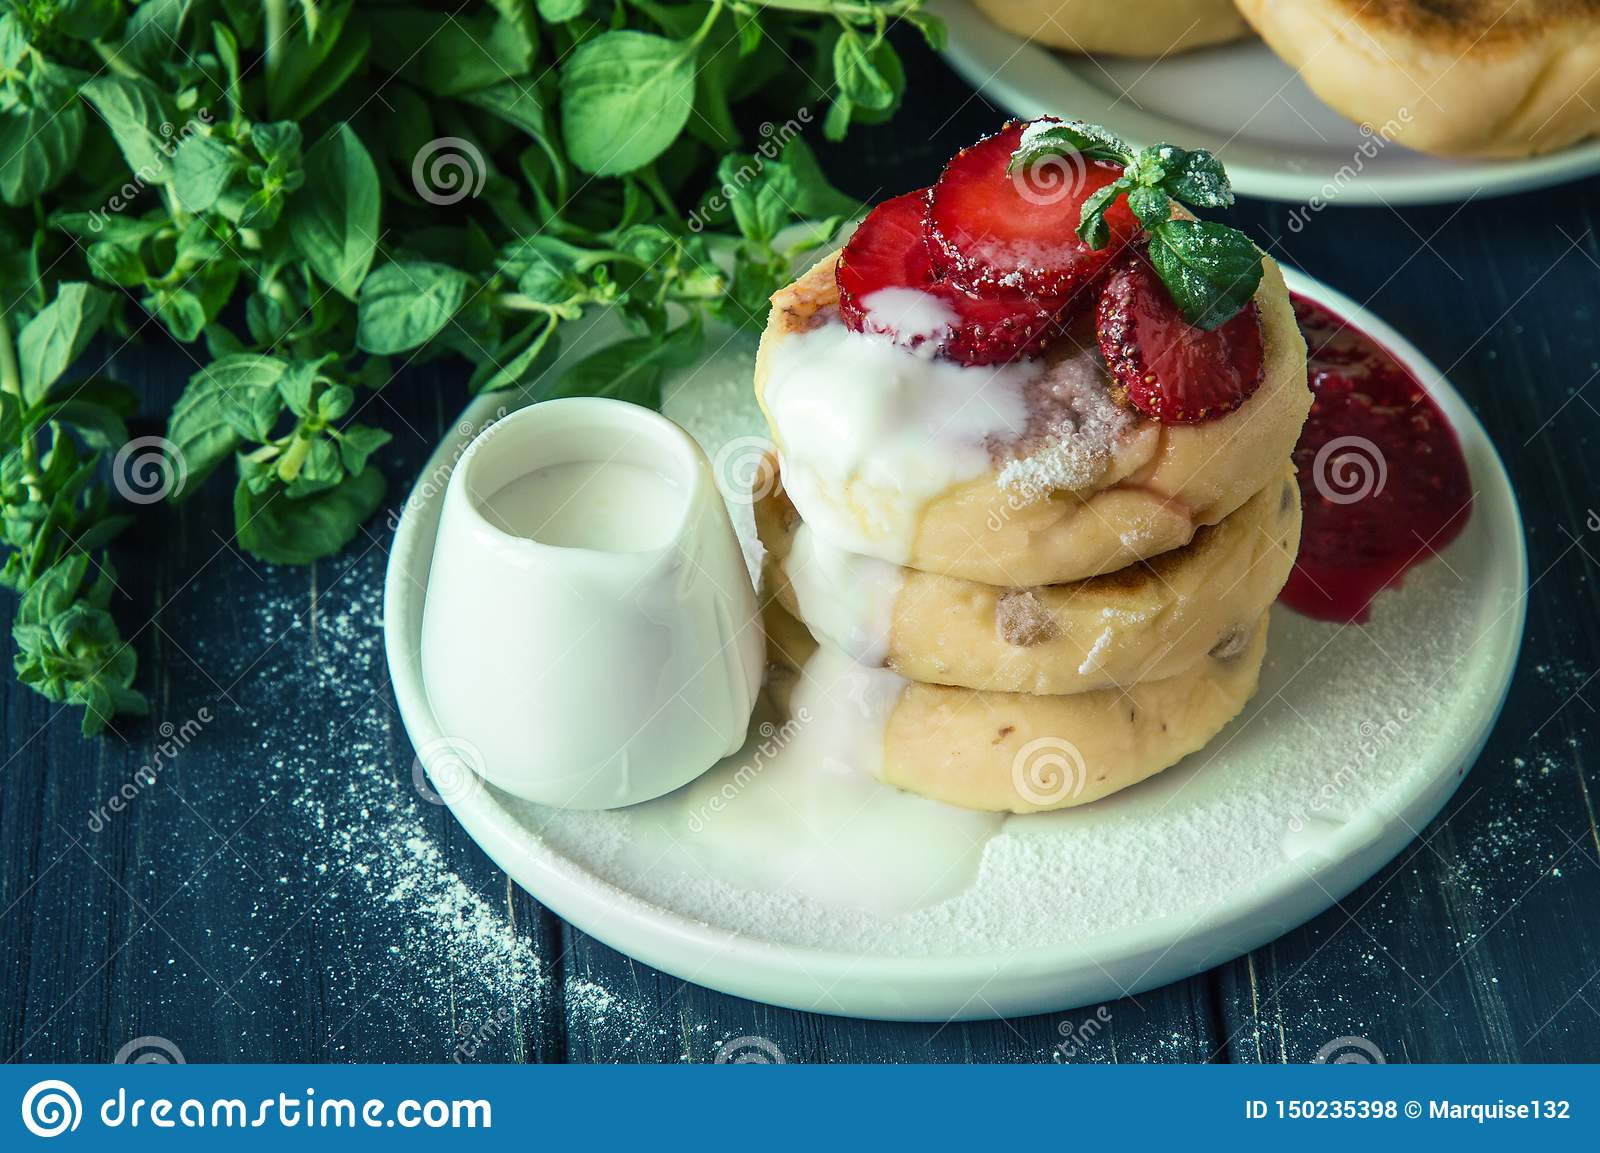 Close up. Traditional rustic breakfast. Freshly made cheese pancakes, poured with cream and decorated with strawberries. Copy